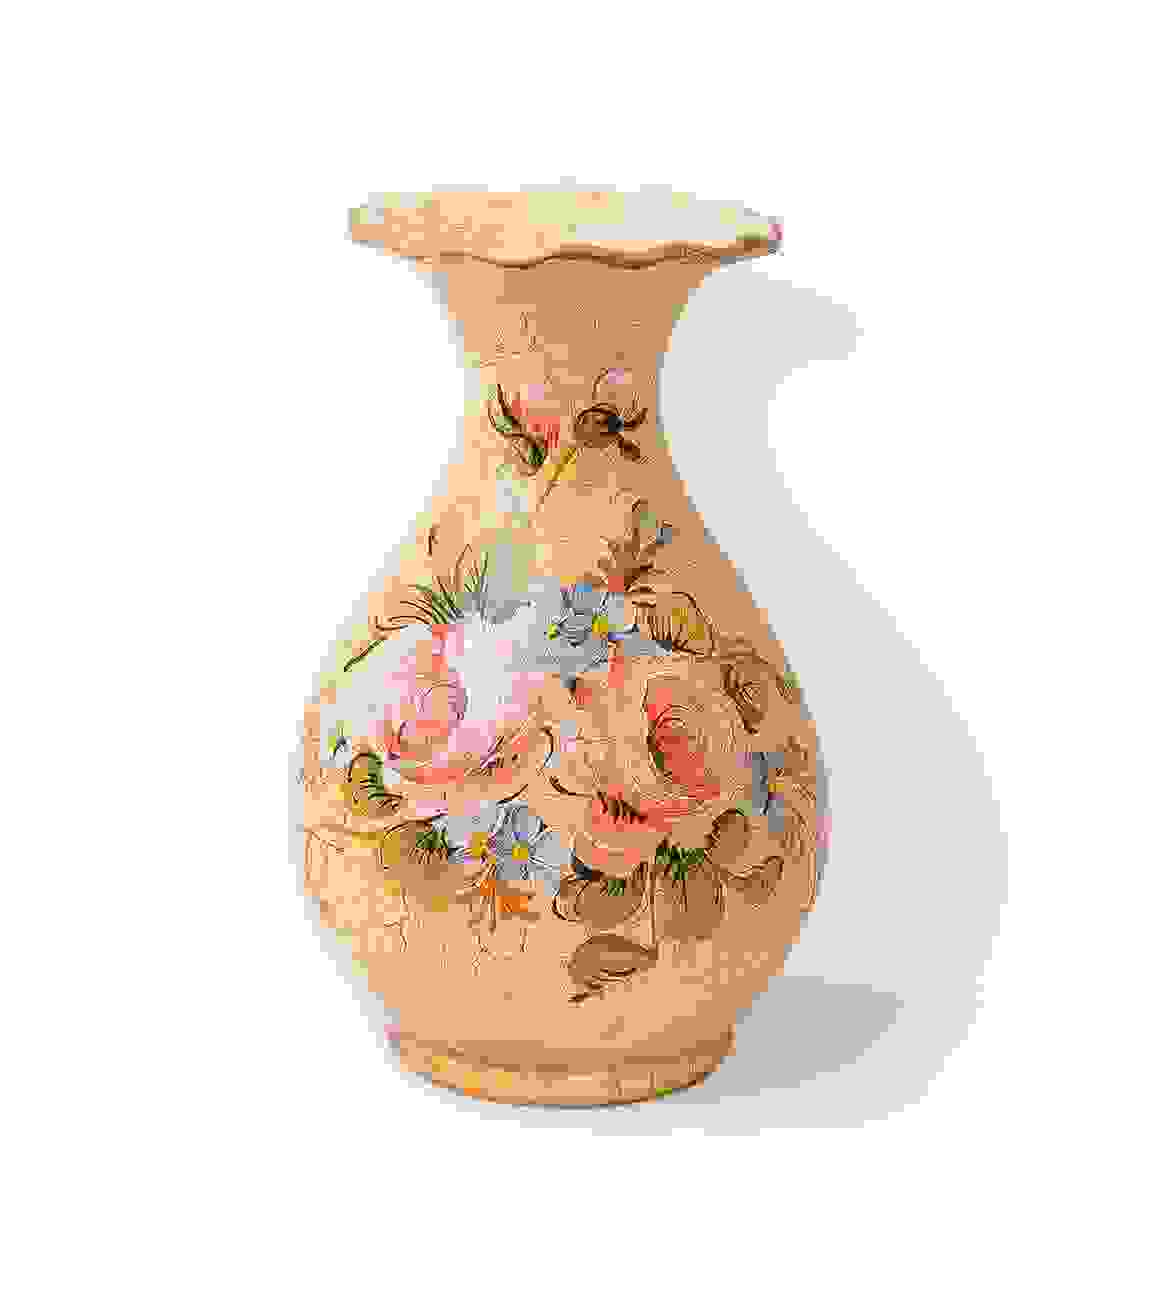 Flower vase of imperial China